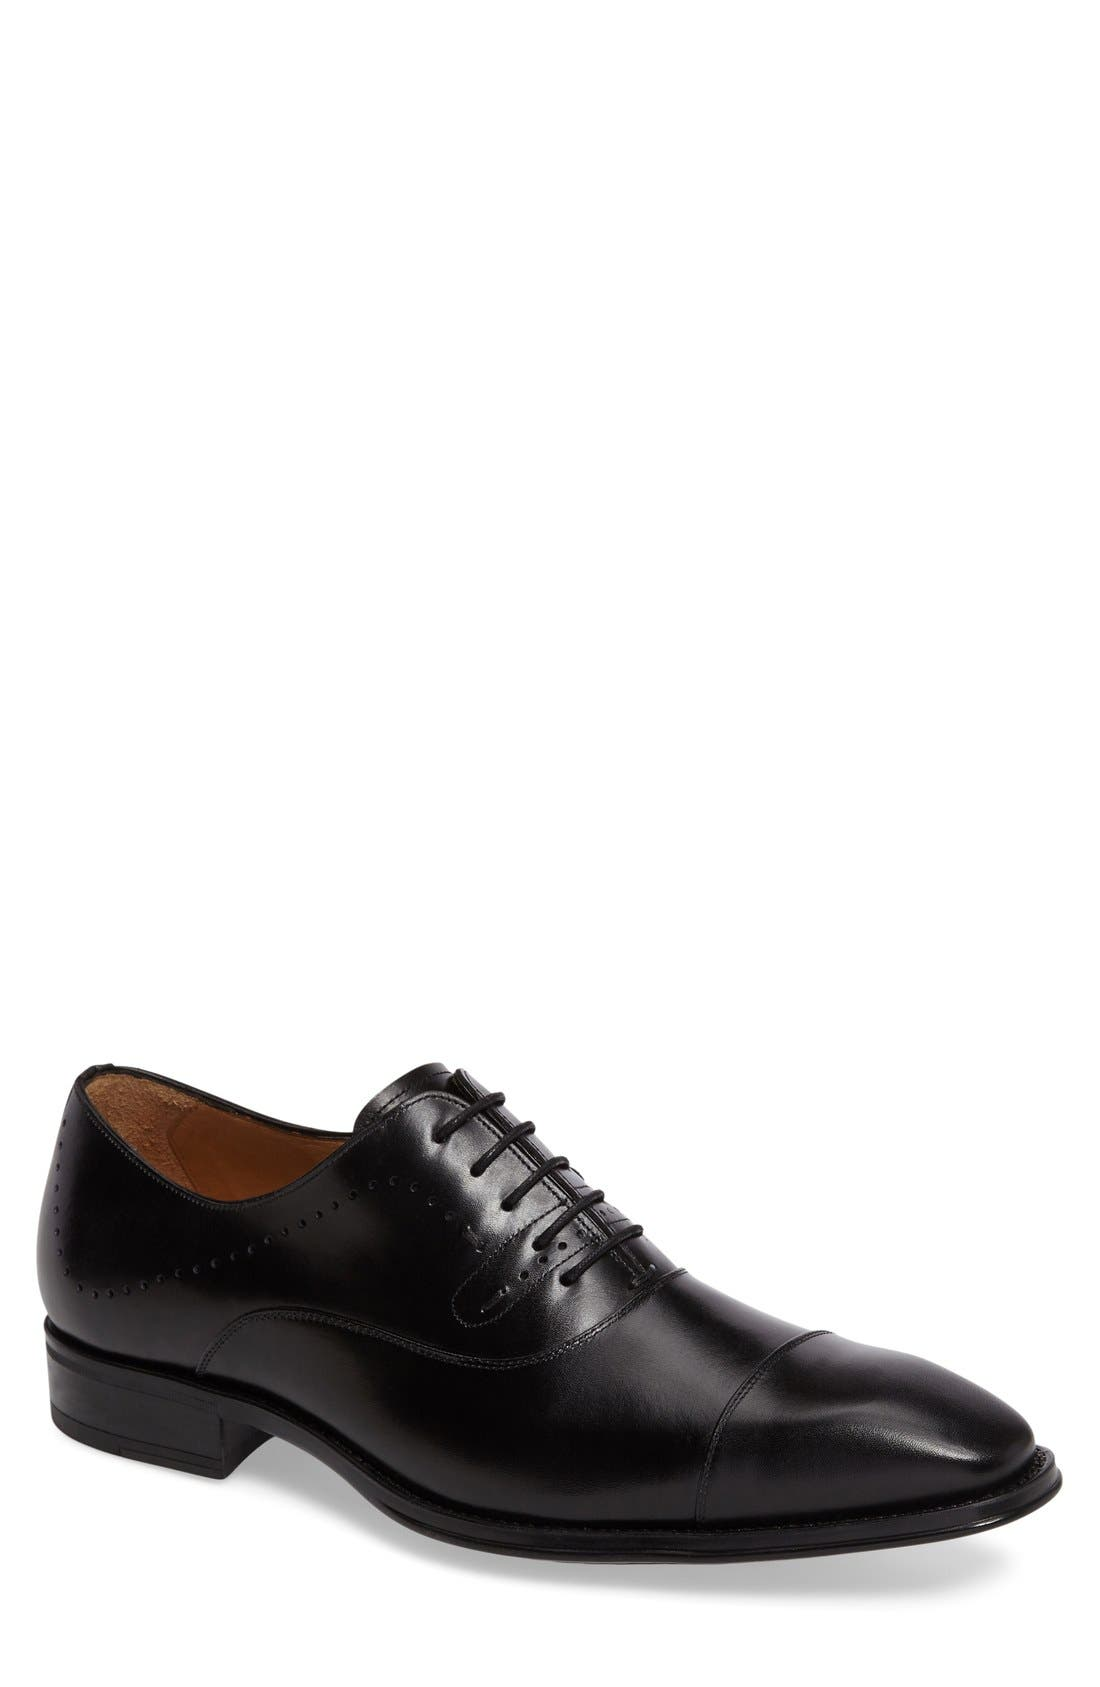 'Fermo' Cap Toe Perforated Oxford,                         Main,                         color, 001